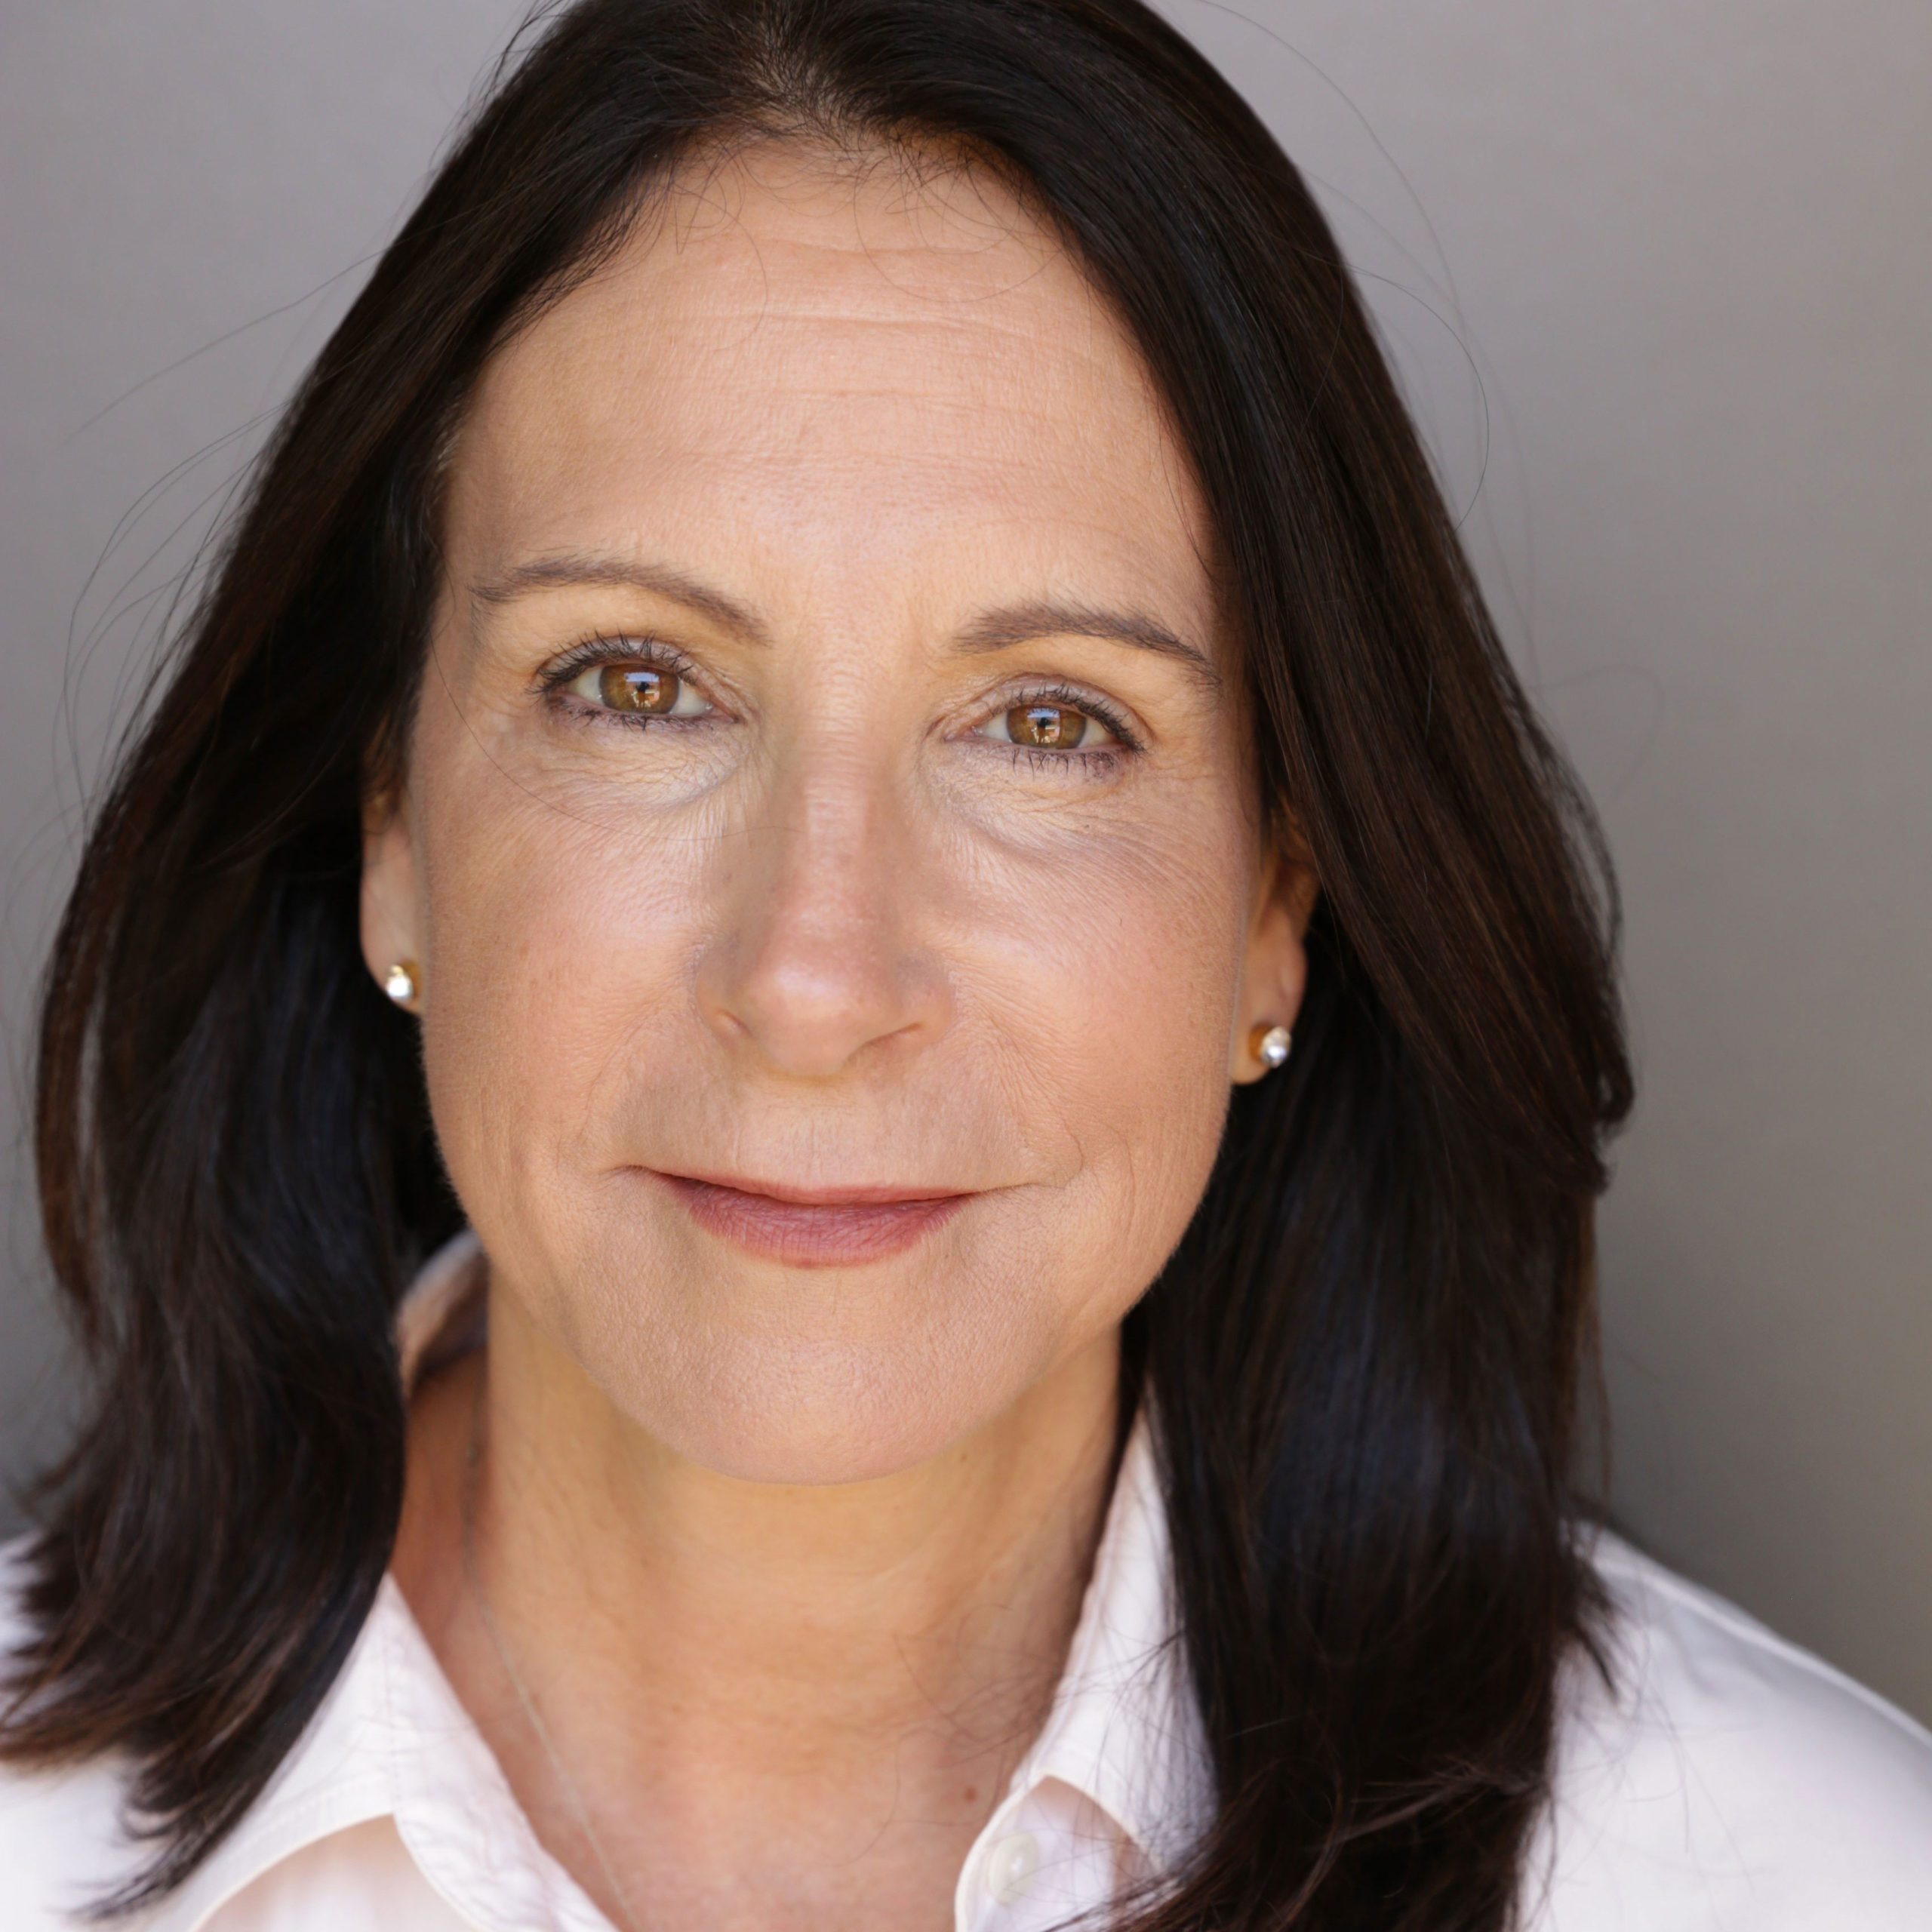 Headshot of Jane Cavalier